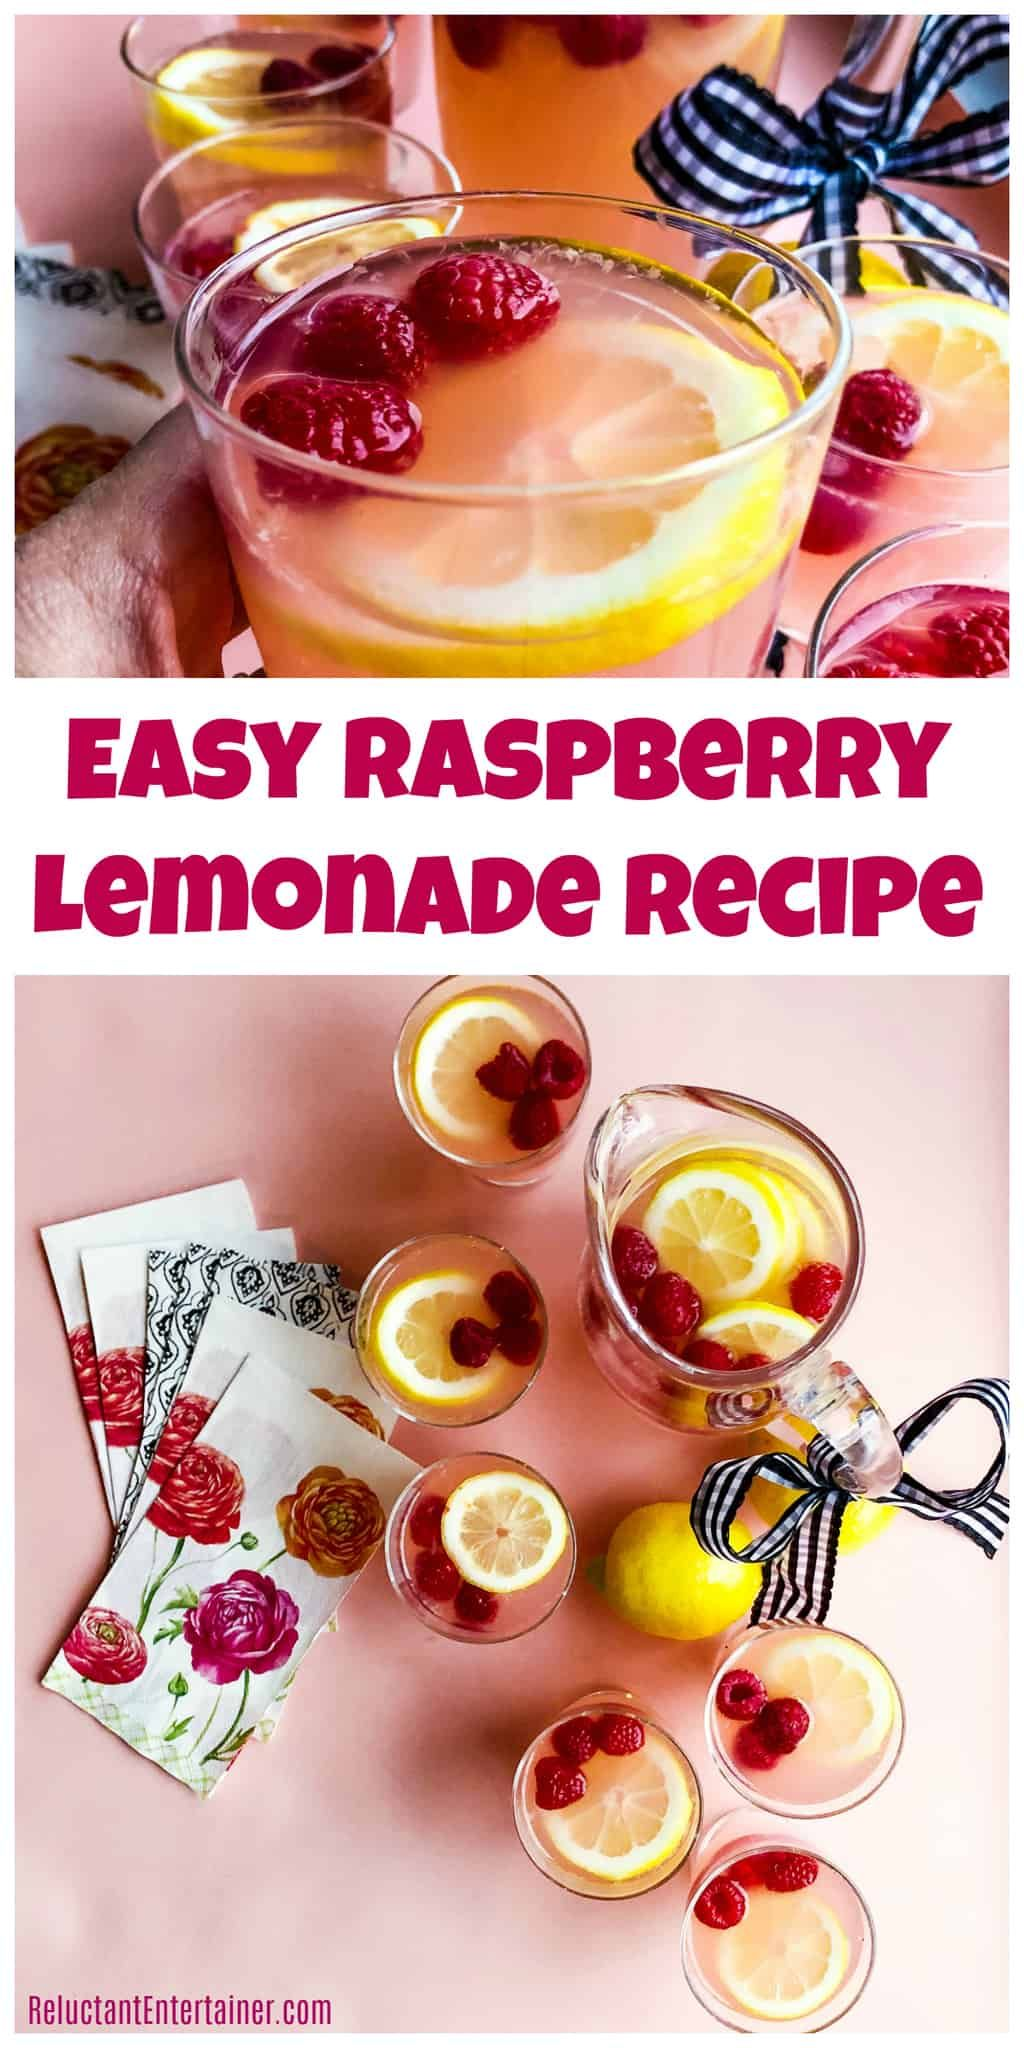 Easy Raspberry Lemonade Recipe #raspberrylemonade #lemonade #raspberrylemonade